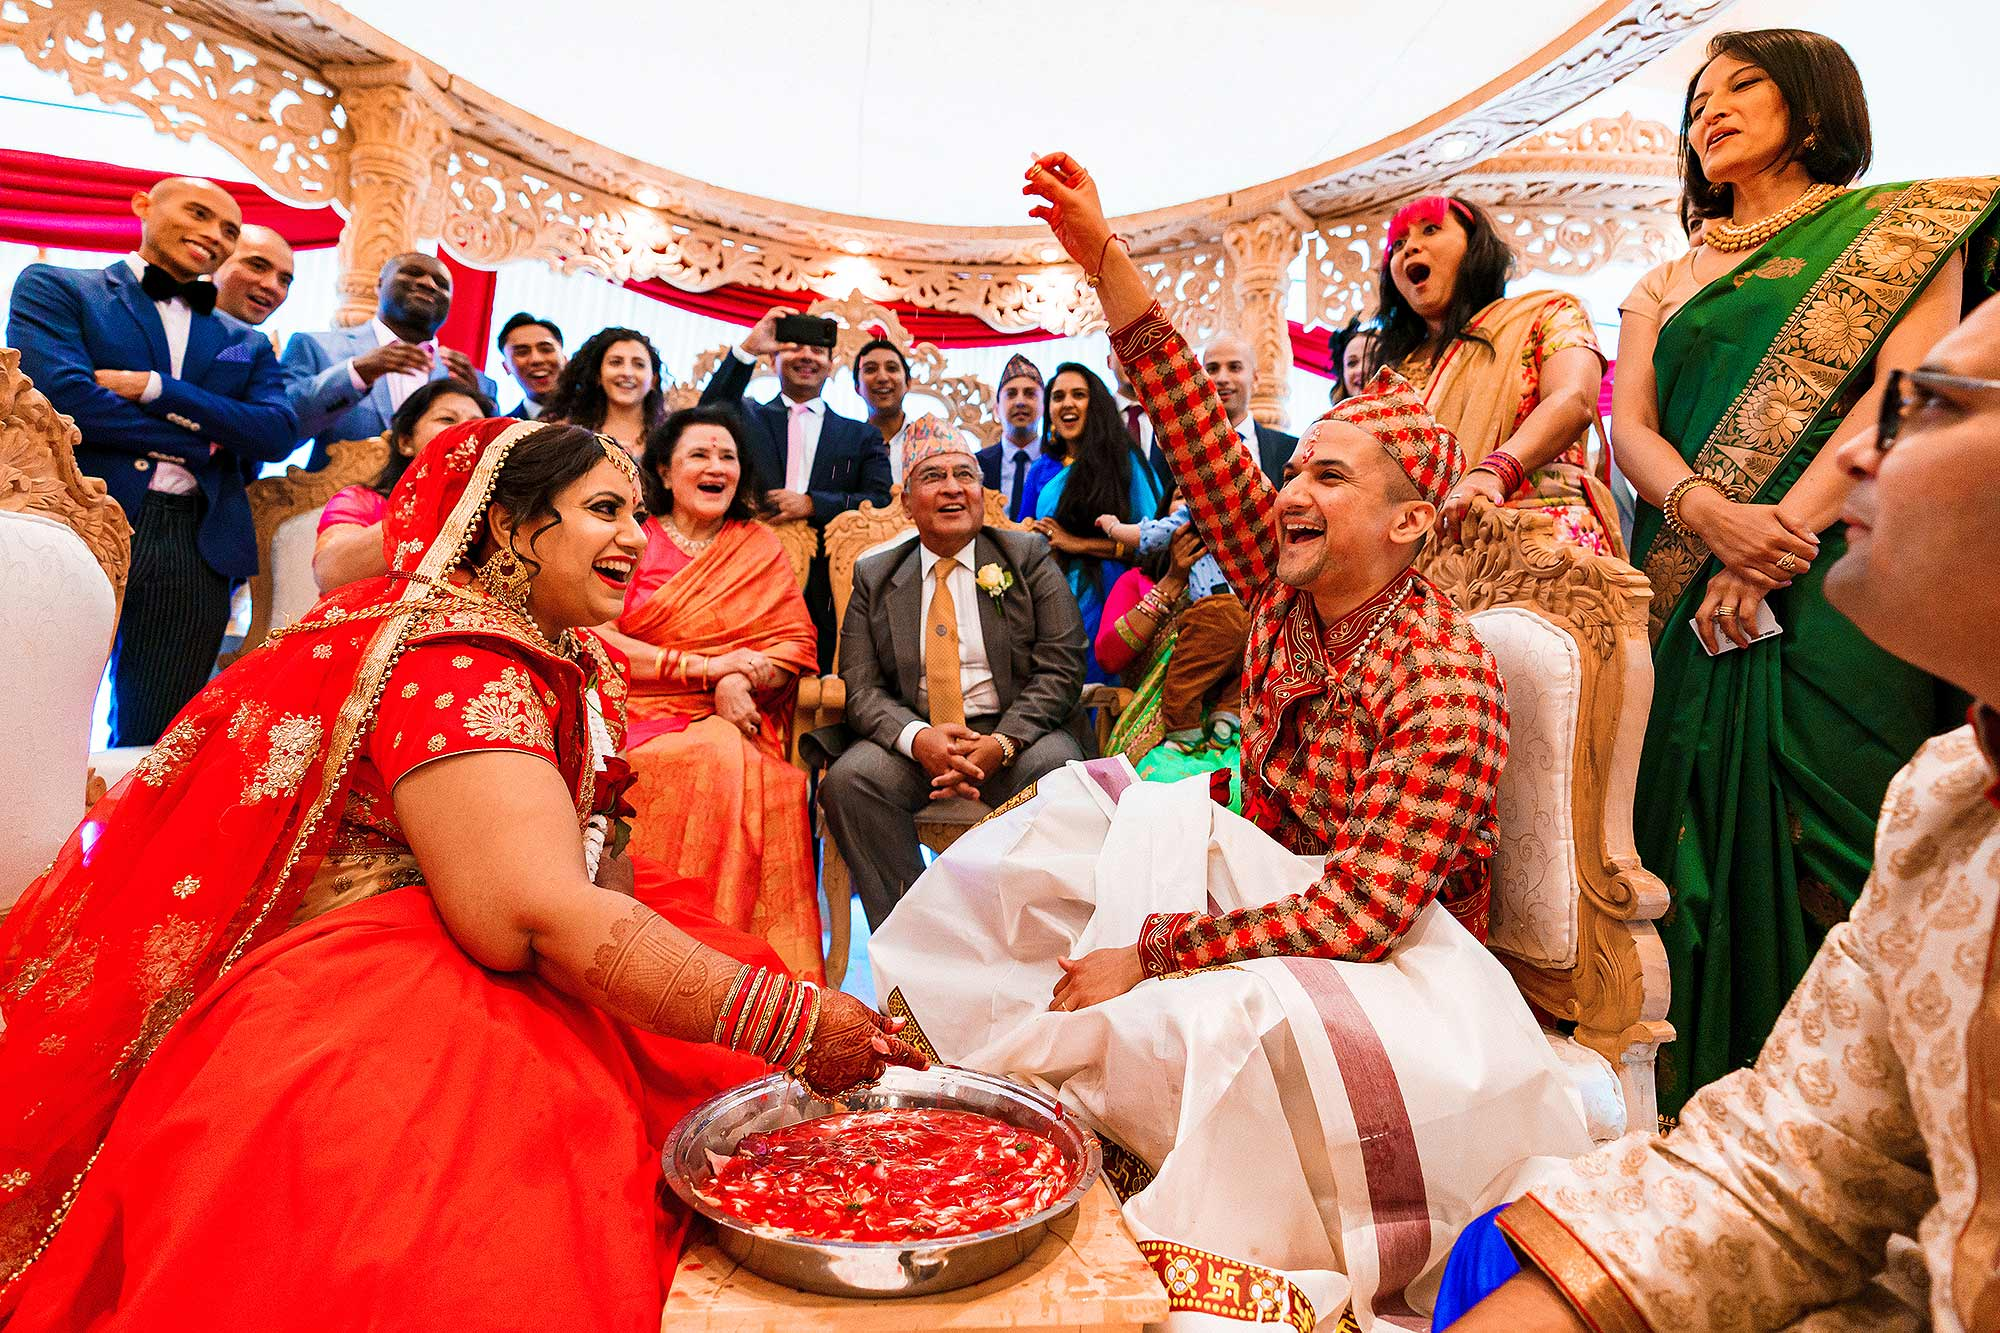 funny real moment during Indian Hindu wedding ceremony